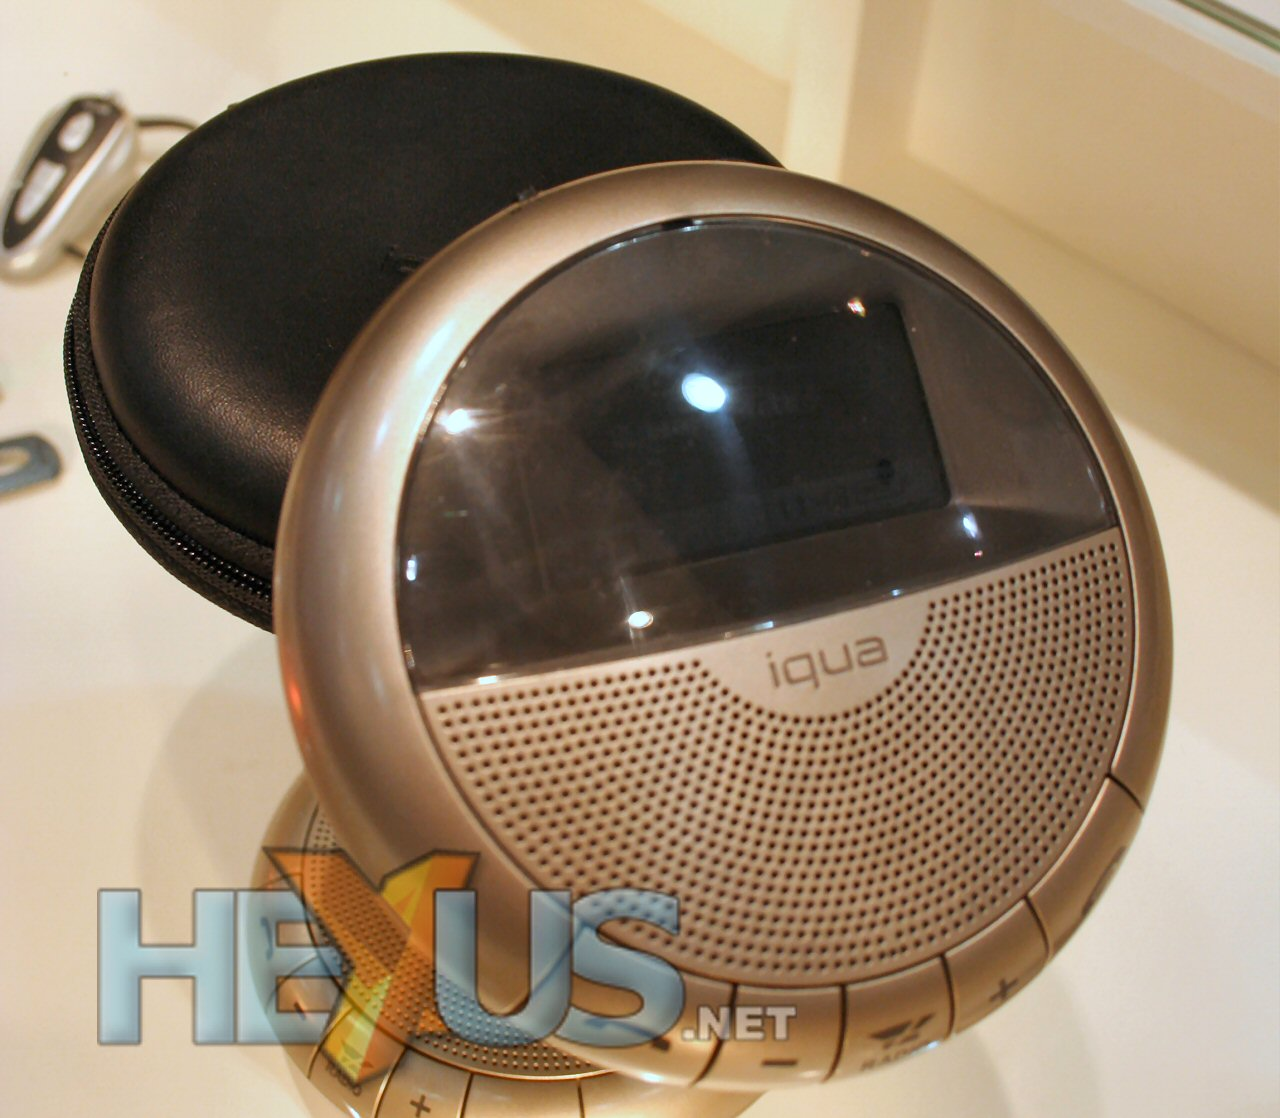 Hands-free Bluetooth For The Home